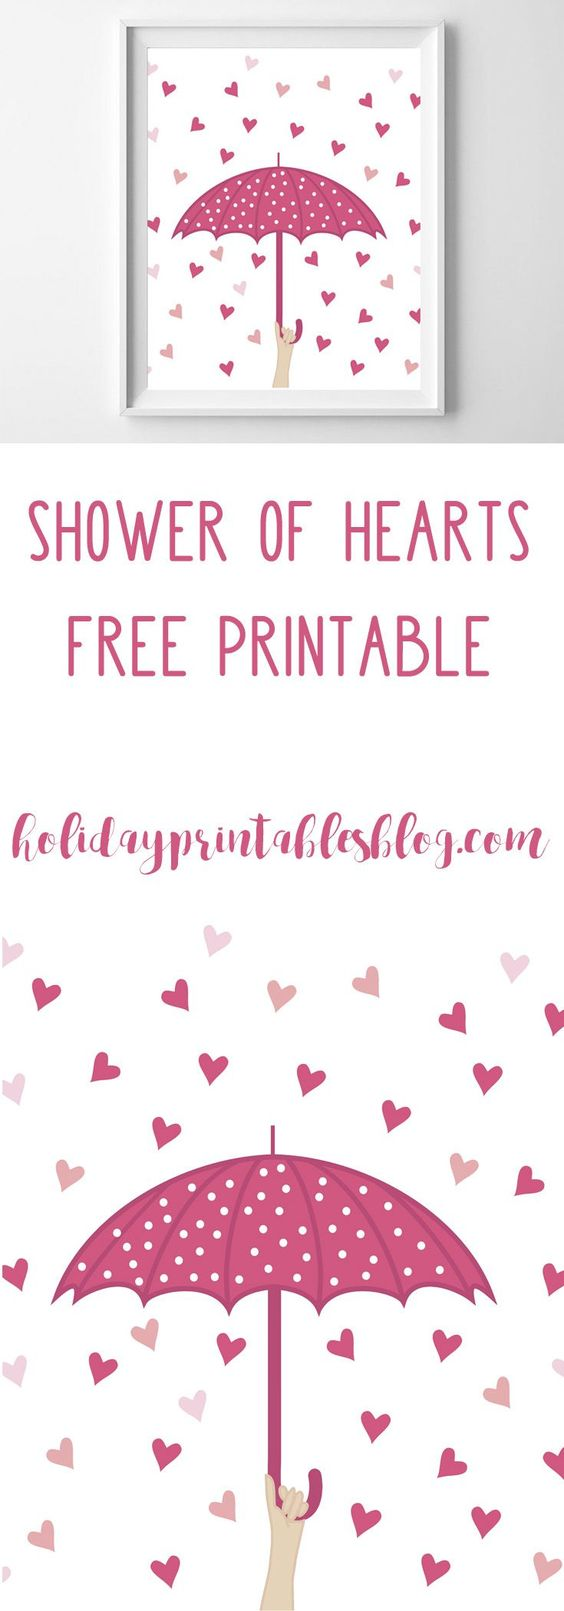 It's raining love! Print off this Valentine's Day art for free! Gorgeous pink umbrella with tumbling pink hearts!